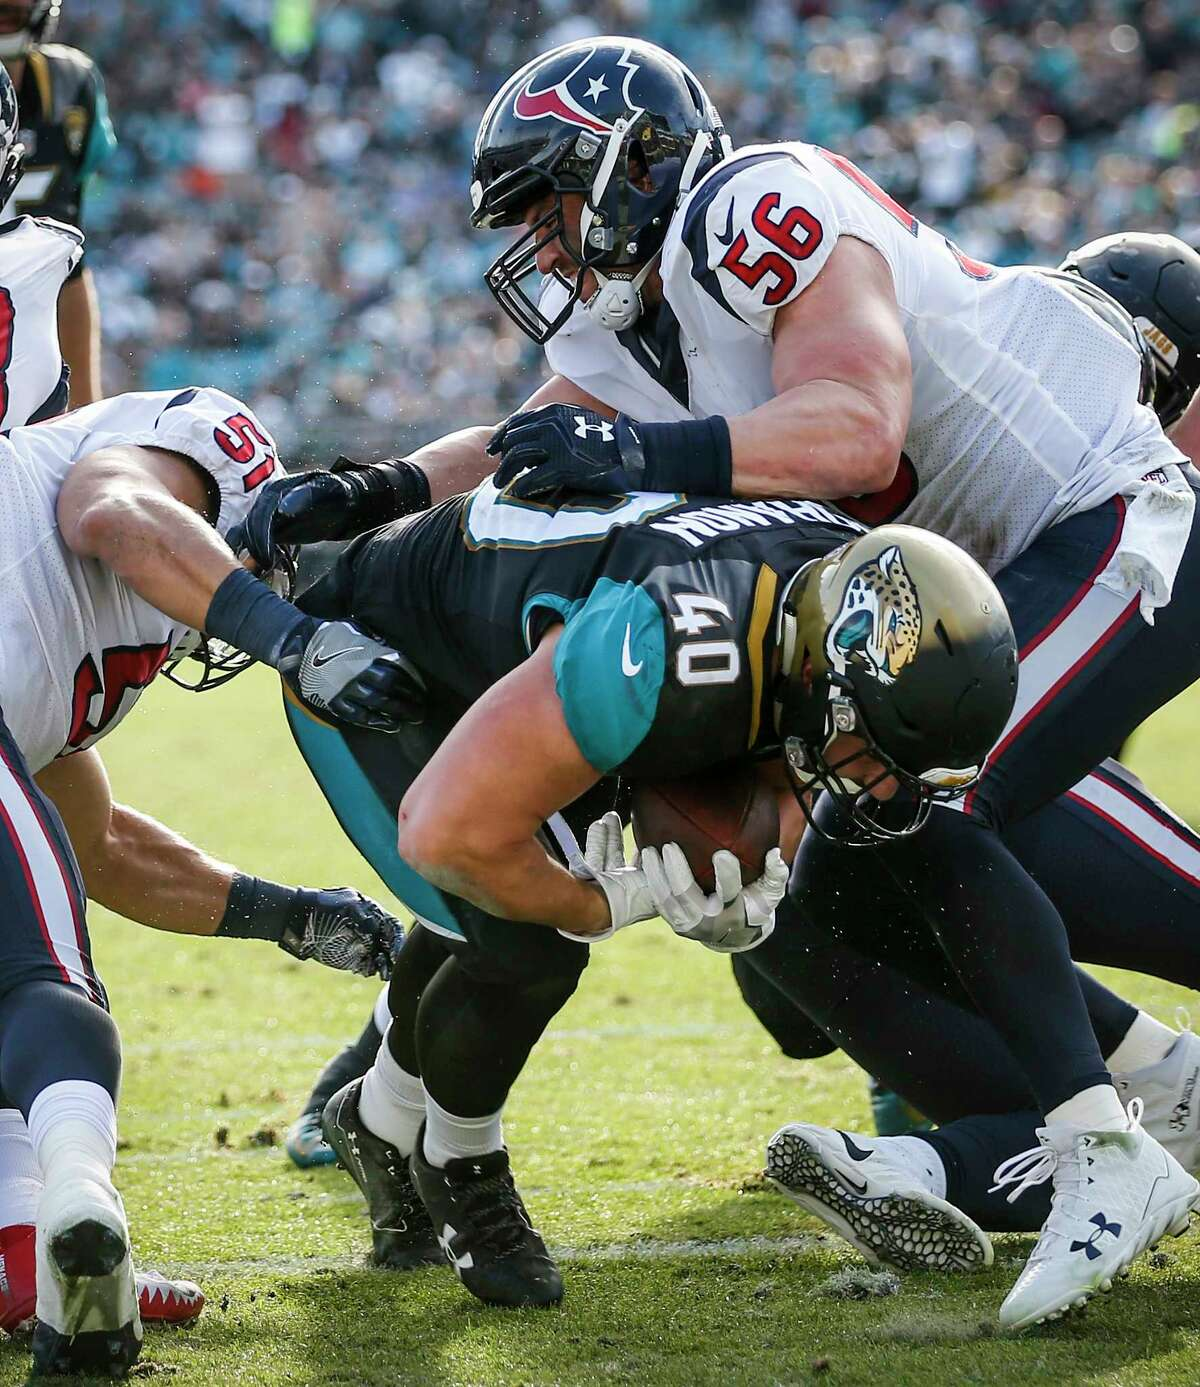 Jacksonville Jaguars fullback Tommy Bohanon (40) runs into the end zone past Houston Texans inside linebackers Dylan Cole (51) and Brian Cushing (56) for a 1-yard touchdown run during the third quarter of an NFL football game at EverBank Field on Sunday, Dec. 17, 2017, in Jacksonville. ( Brett Coomer / Houston Chronicle )